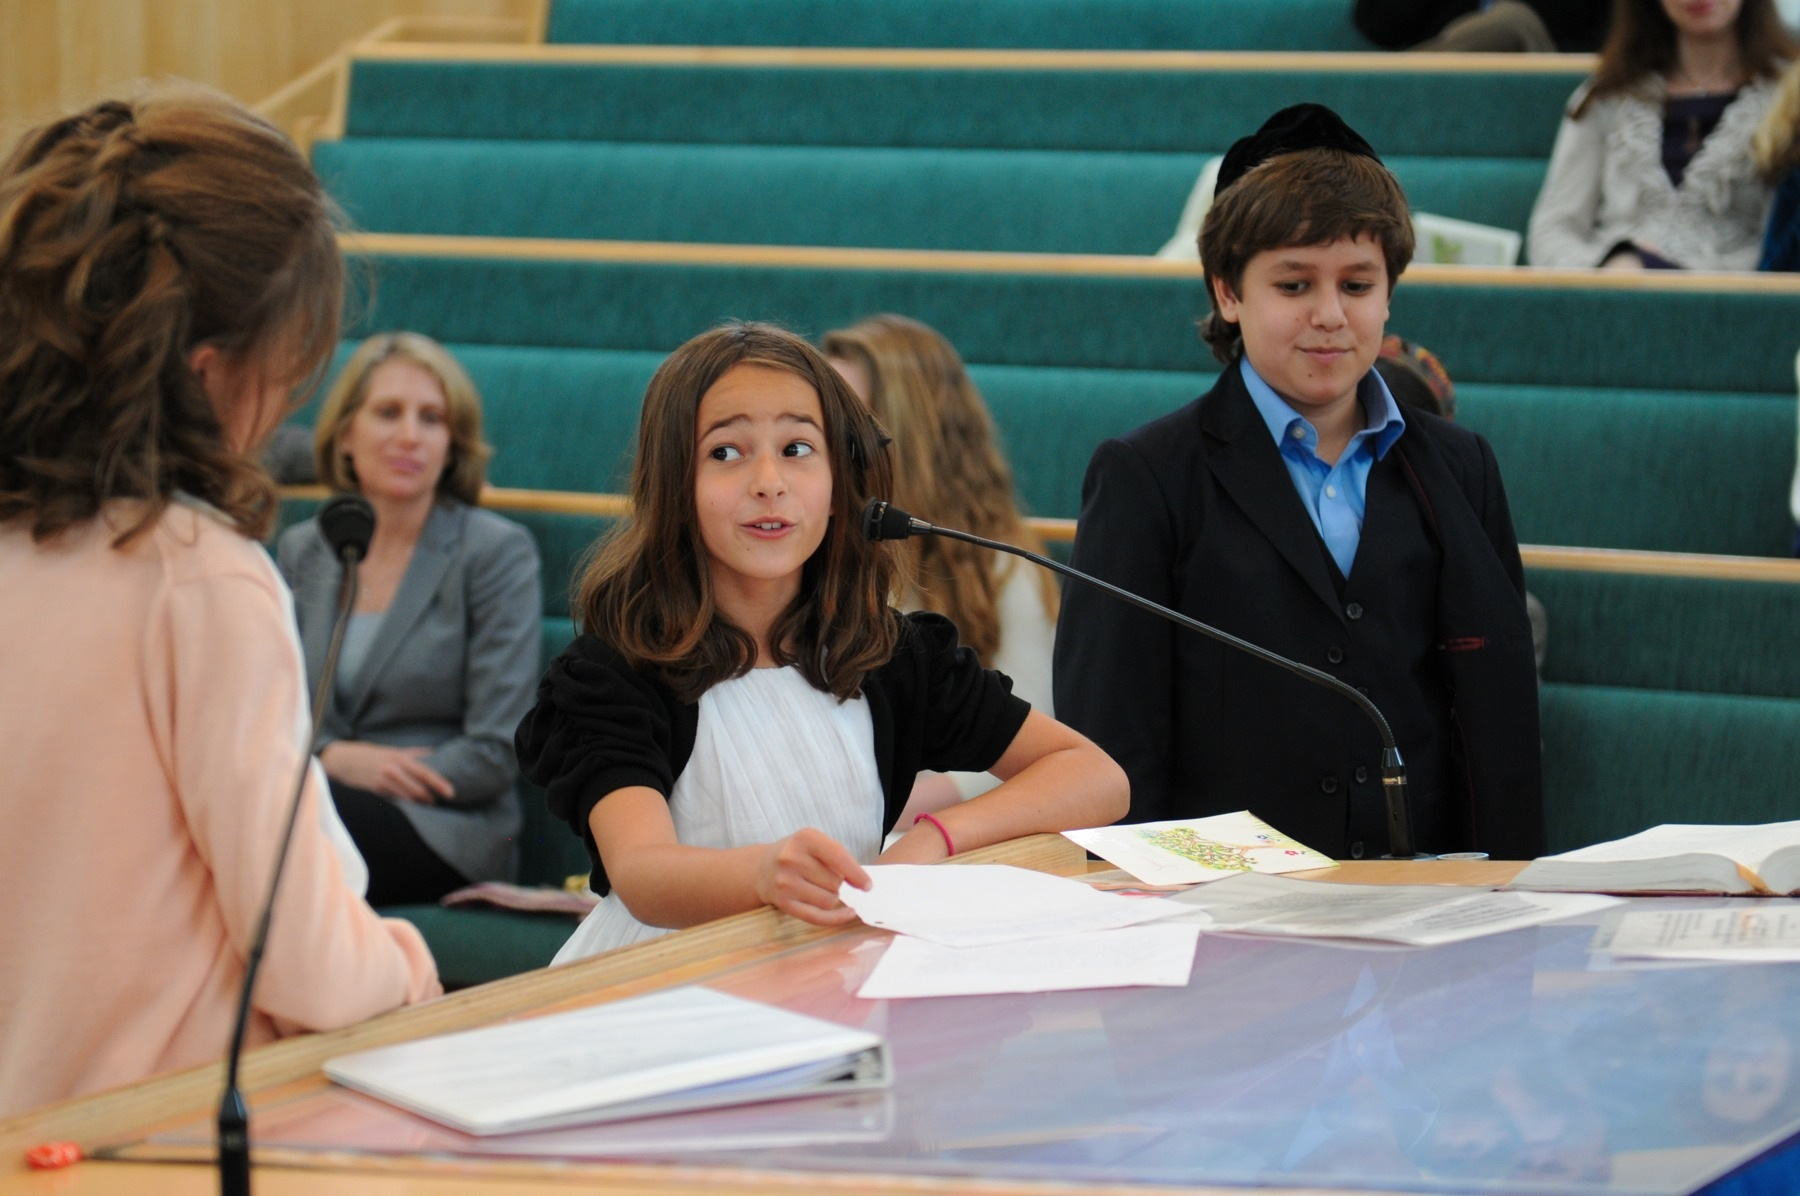 bat_mitzvah_bar_mitzvah_san_francisco_bay_area_photographer_party_photography_097